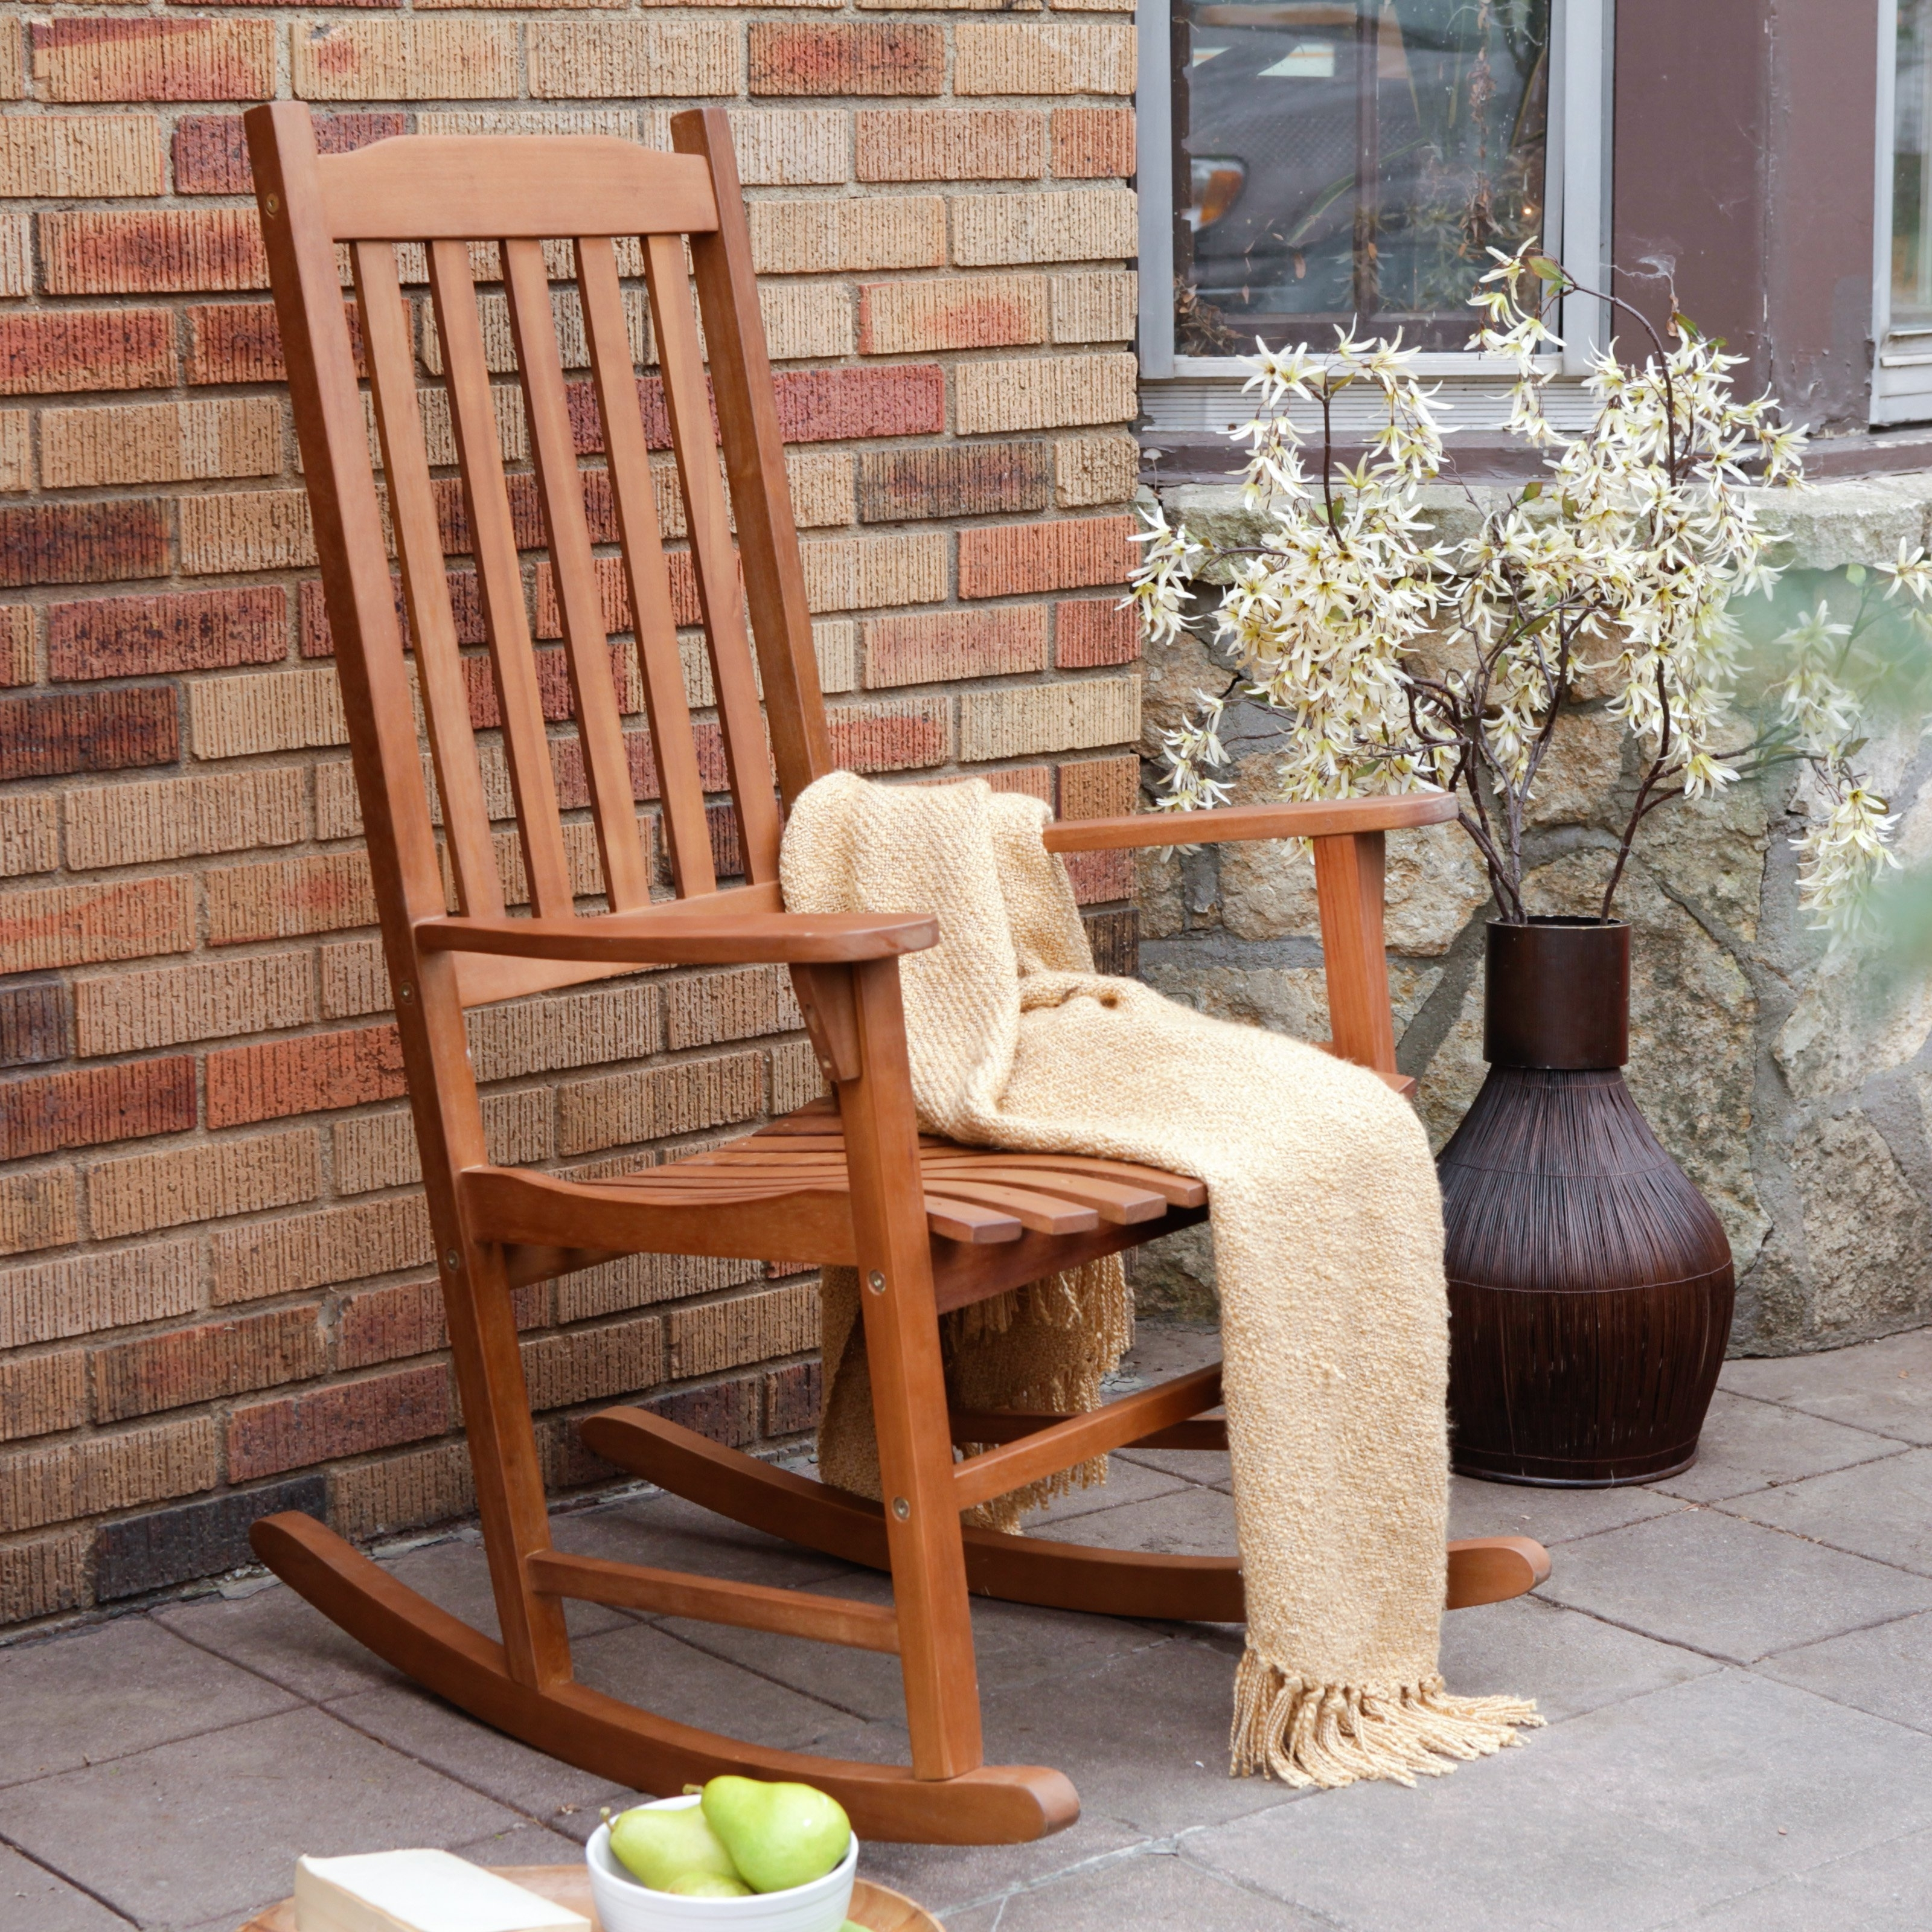 2018 Patio Rocking Size Of Furniture Homemetal Solid Wood Rocking Chair Regarding Indoor Wicker Rocking Chairs (View 2 of 20)